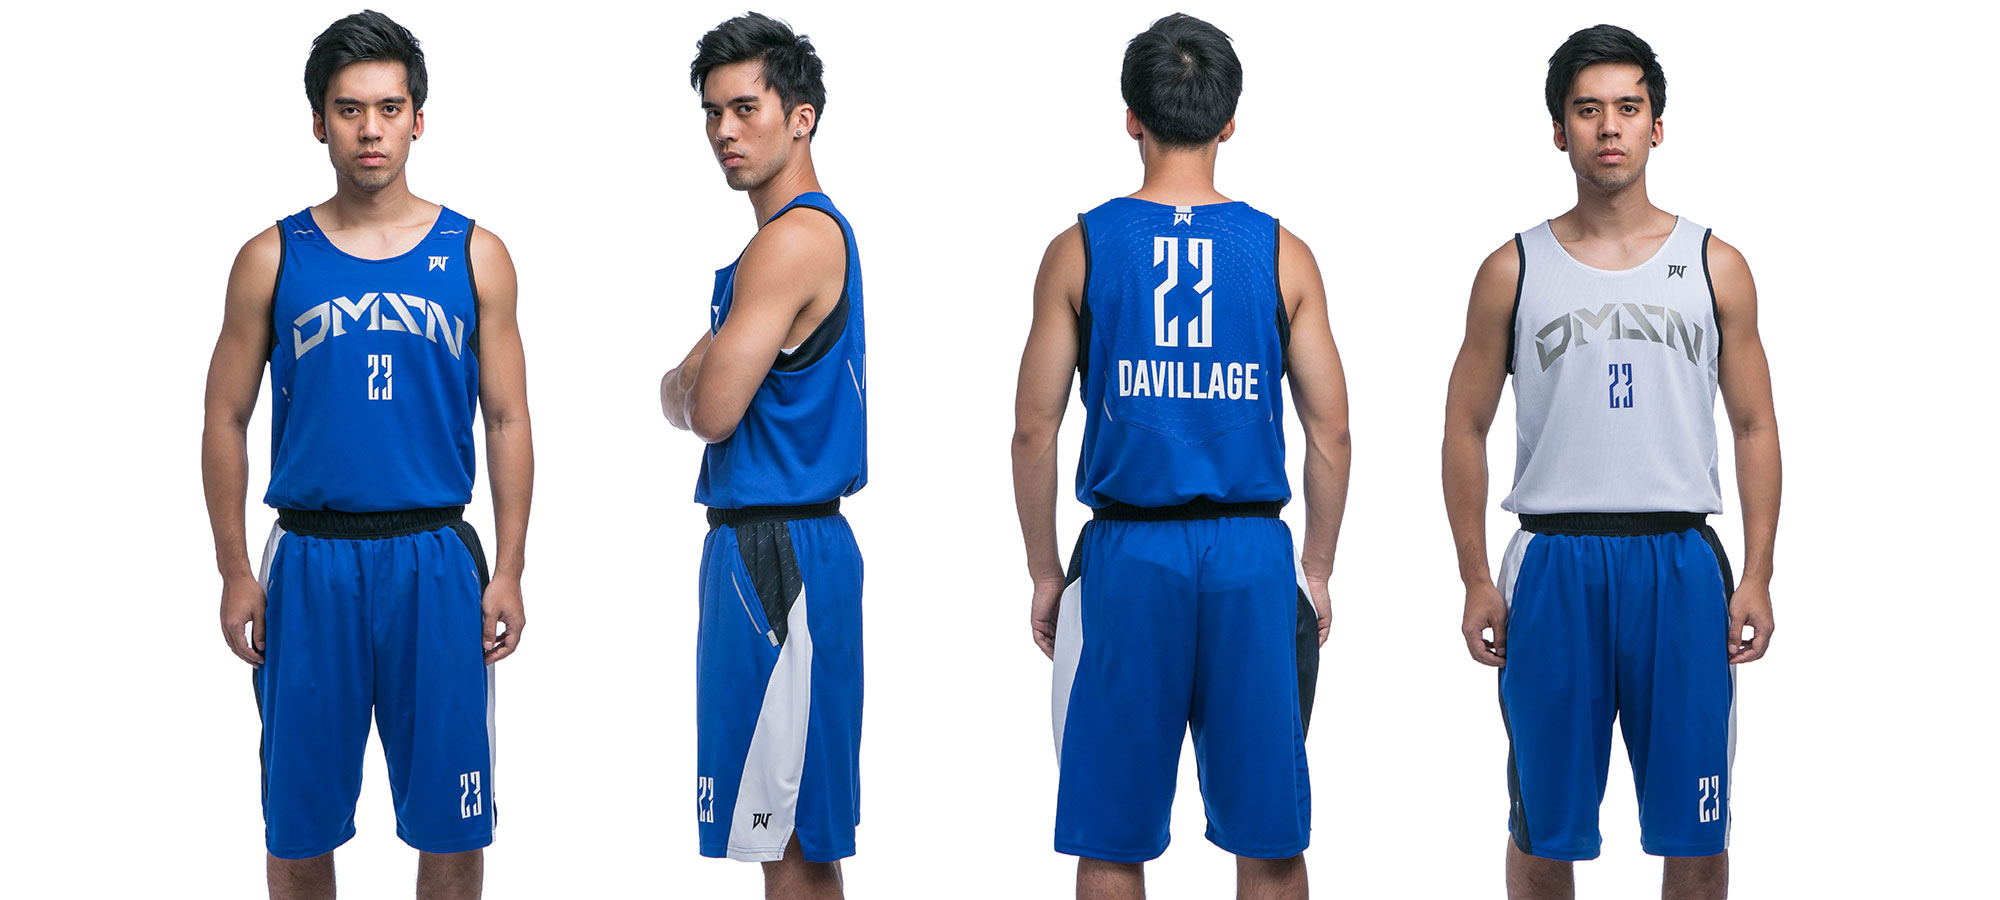 jersey-basketball-dimensional1-blue-white-demo-model